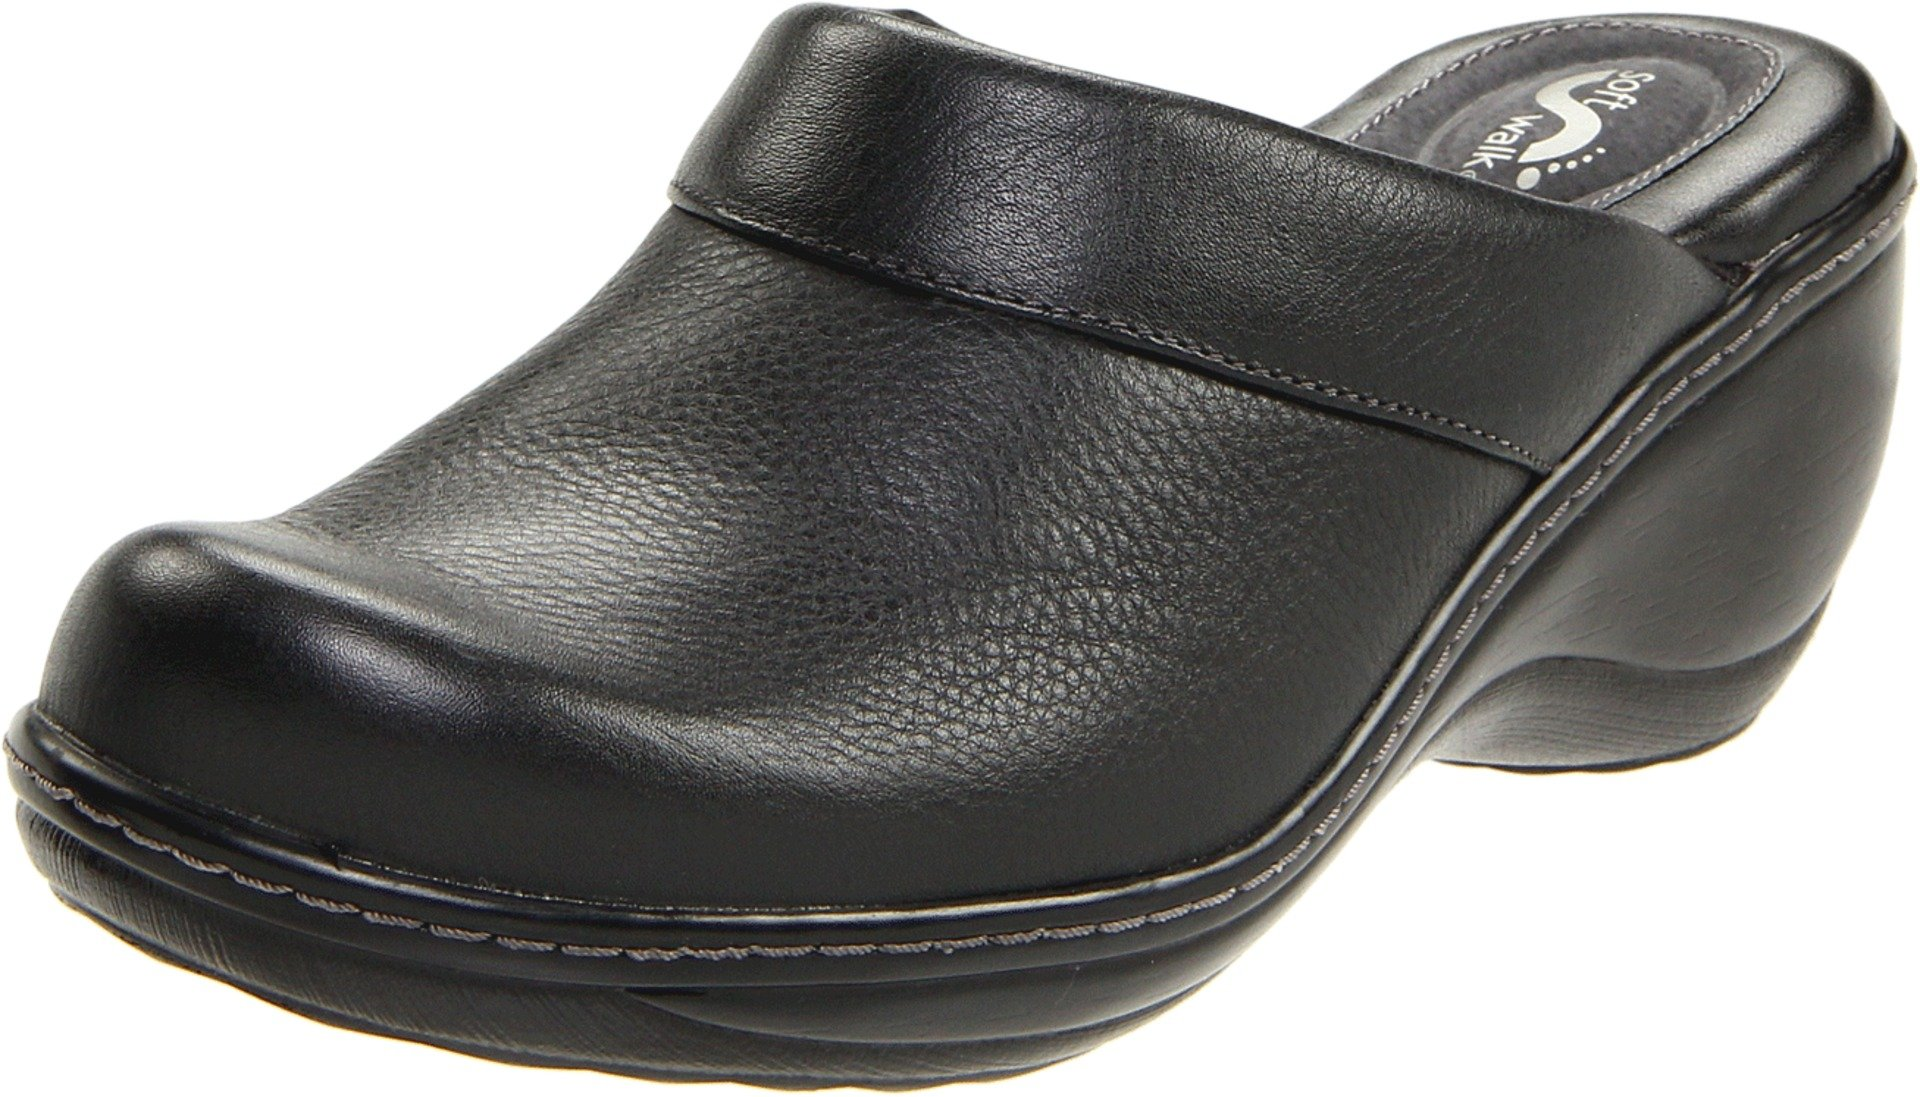 Softwalk Women's Murietta Clog,Black,8.5 N by SoftWalk